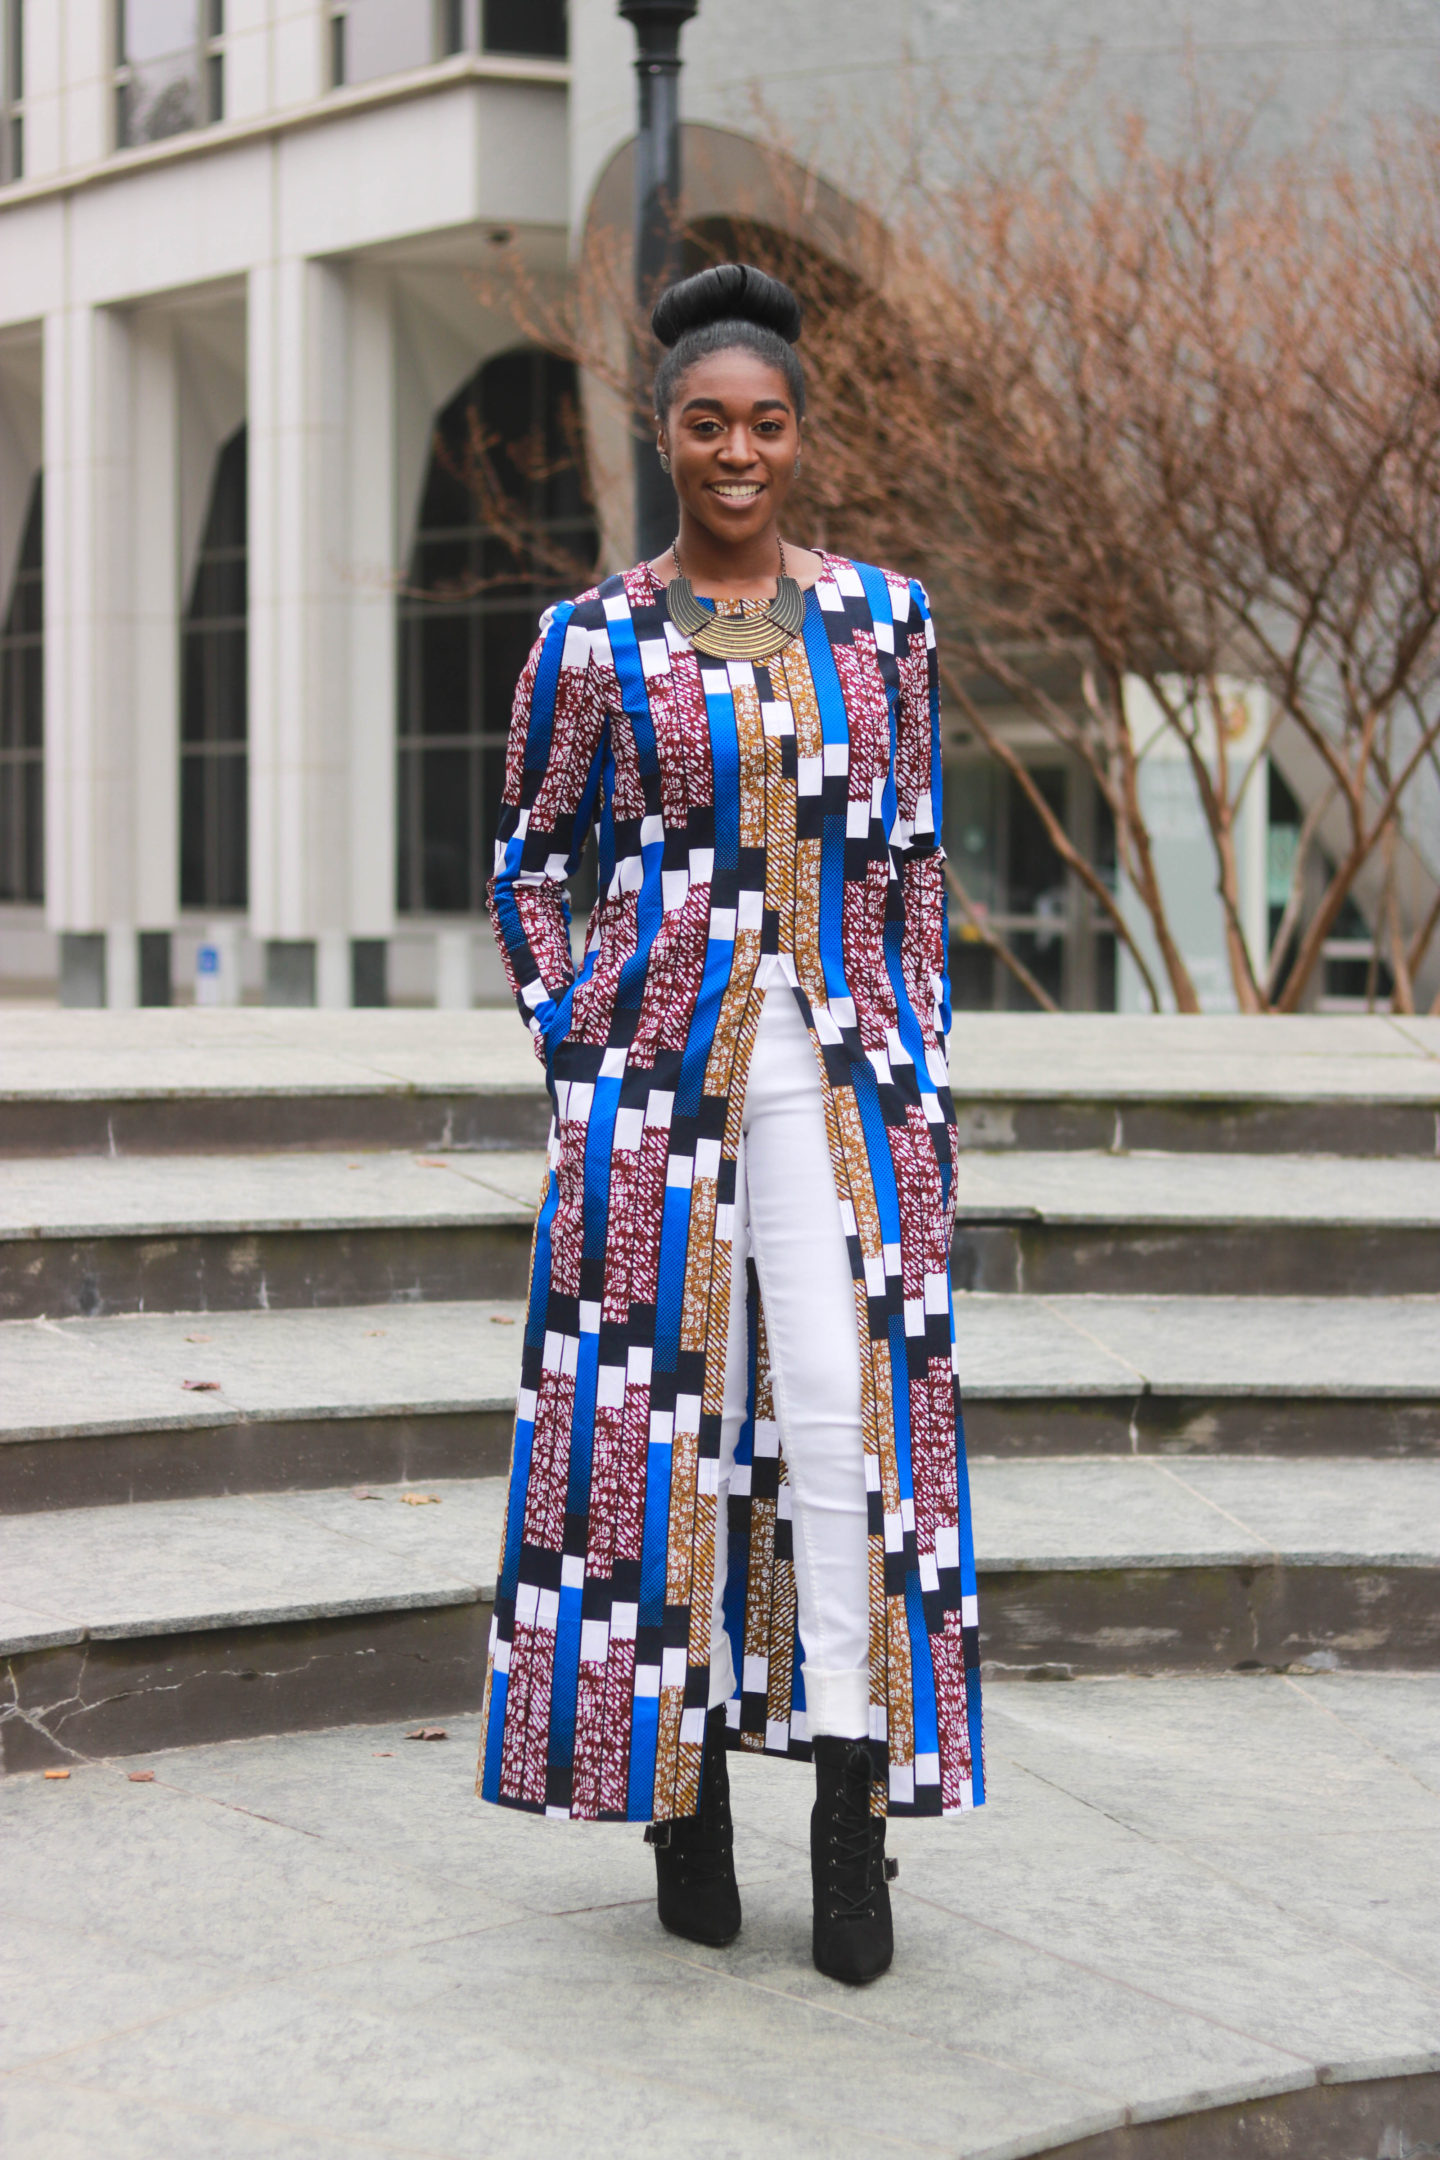 DIY Ankara African Wax Print Front Slit Maxi Shirt Tutorial, How to sew a shirt, Sewing Pattern Hacks, Long Shirt, African Fashion, Ankara Fashion, African Print Fashion, Nigerian Weddings, Nigerian Fashion, Ghanaian Fashion, Kitenge